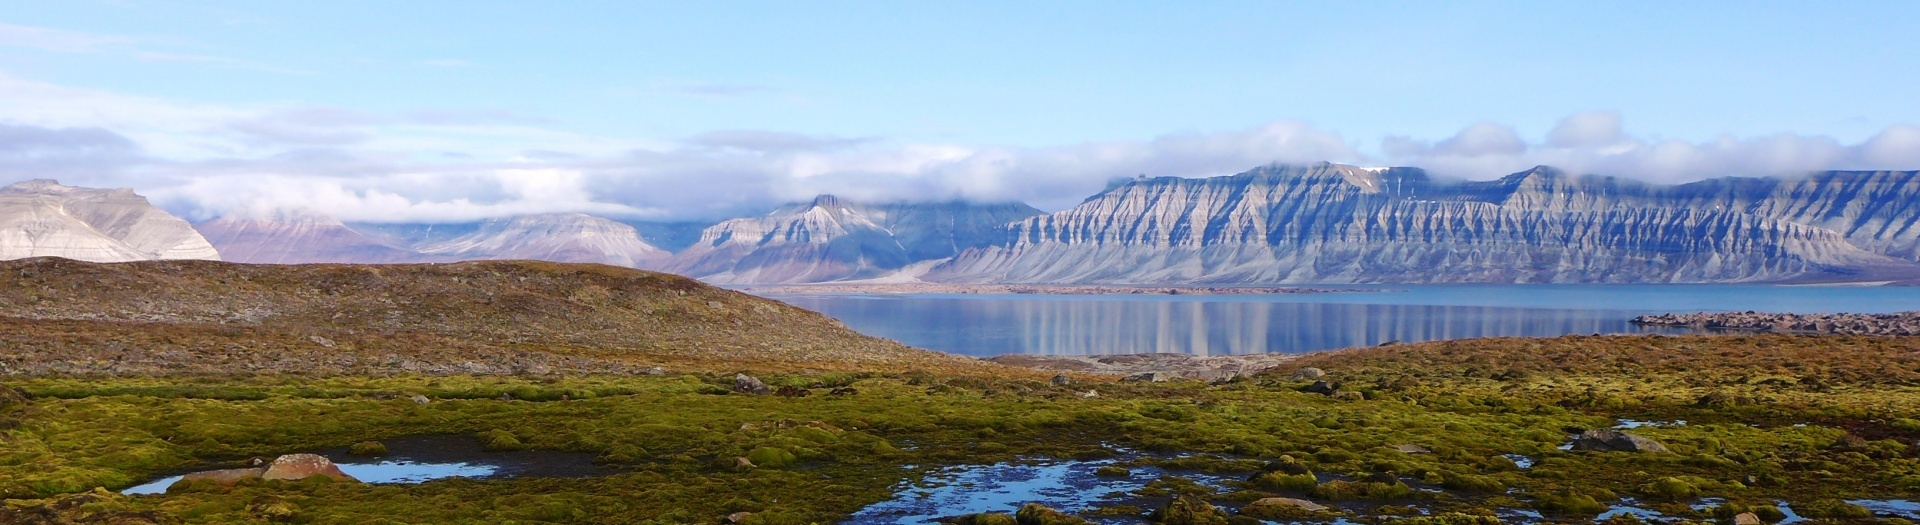 Svalbard in the Summer